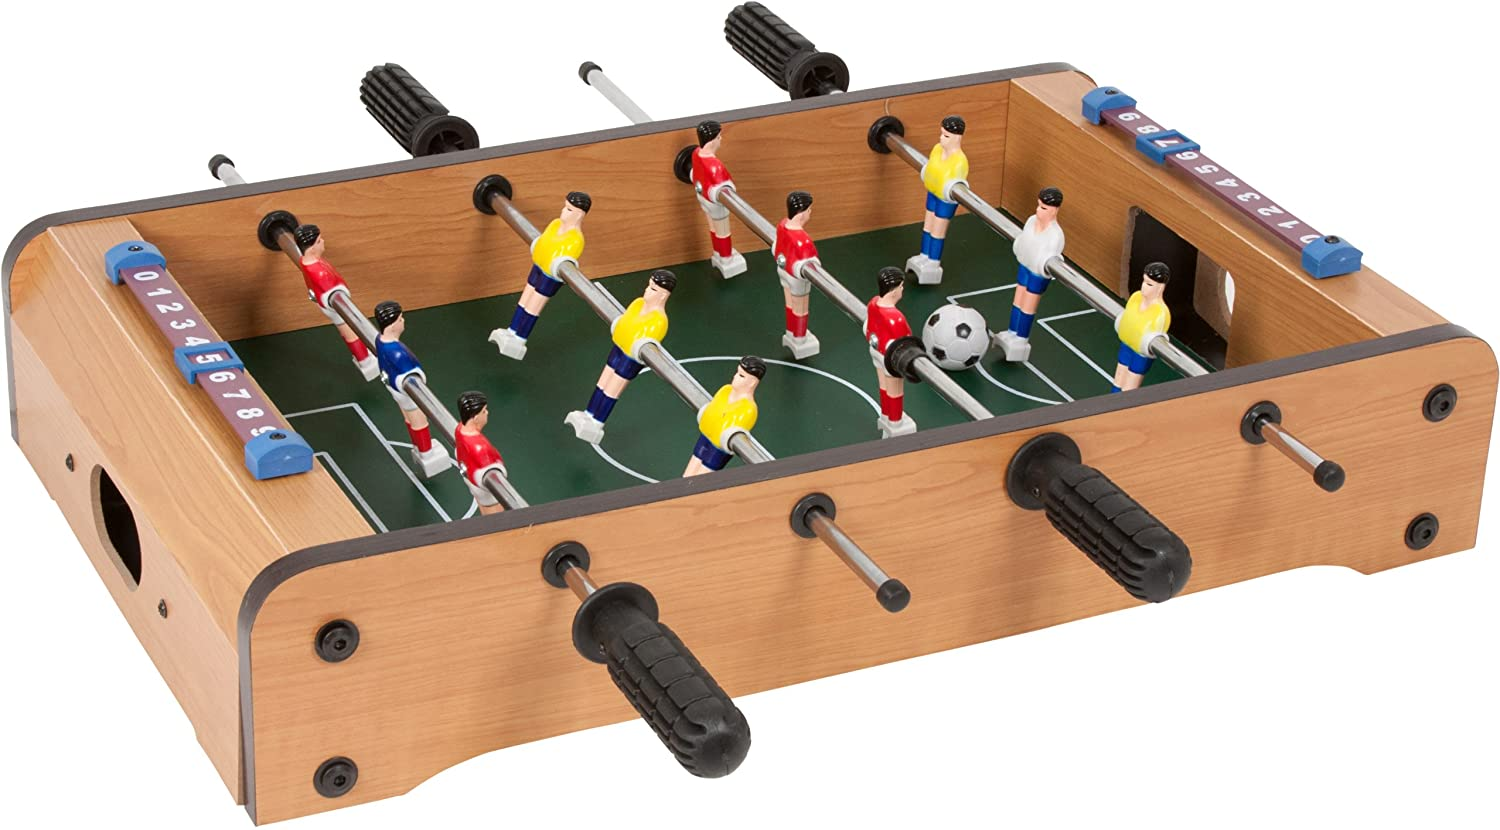 99 Game Rooms Tabletop Mini Foosball Game By Trademark Innovations MINI-FOOSBALL